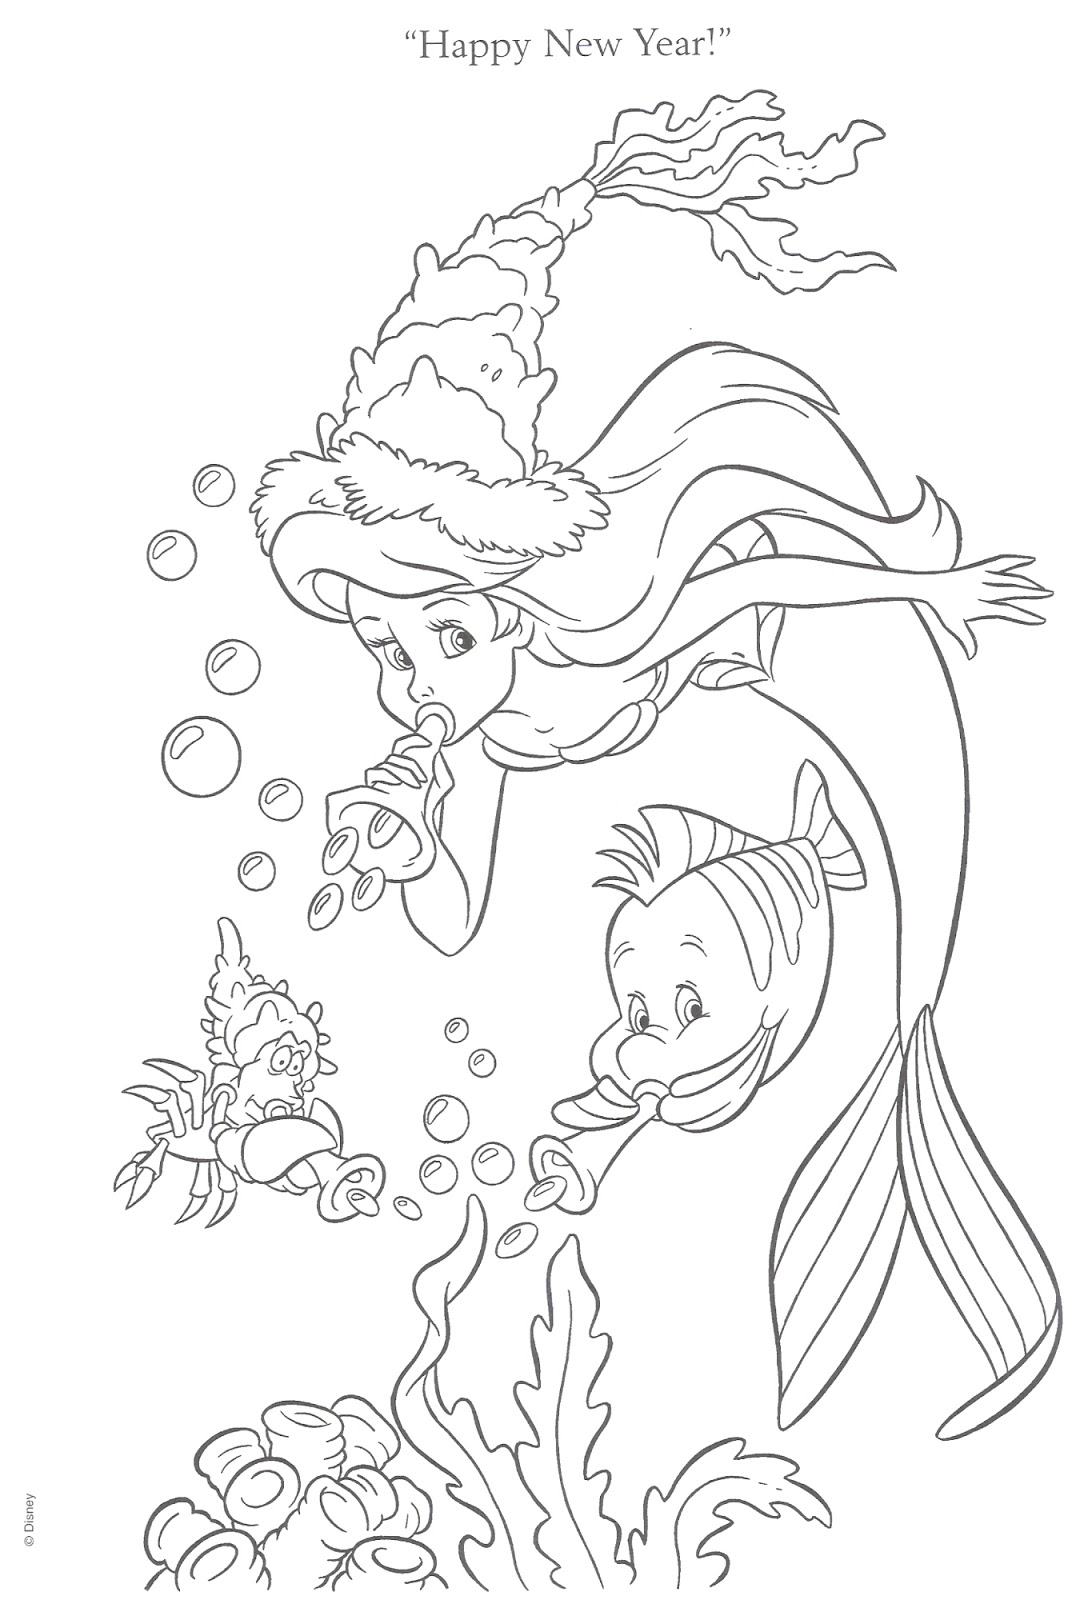 Free Coloring Pages Of Princes Ariel